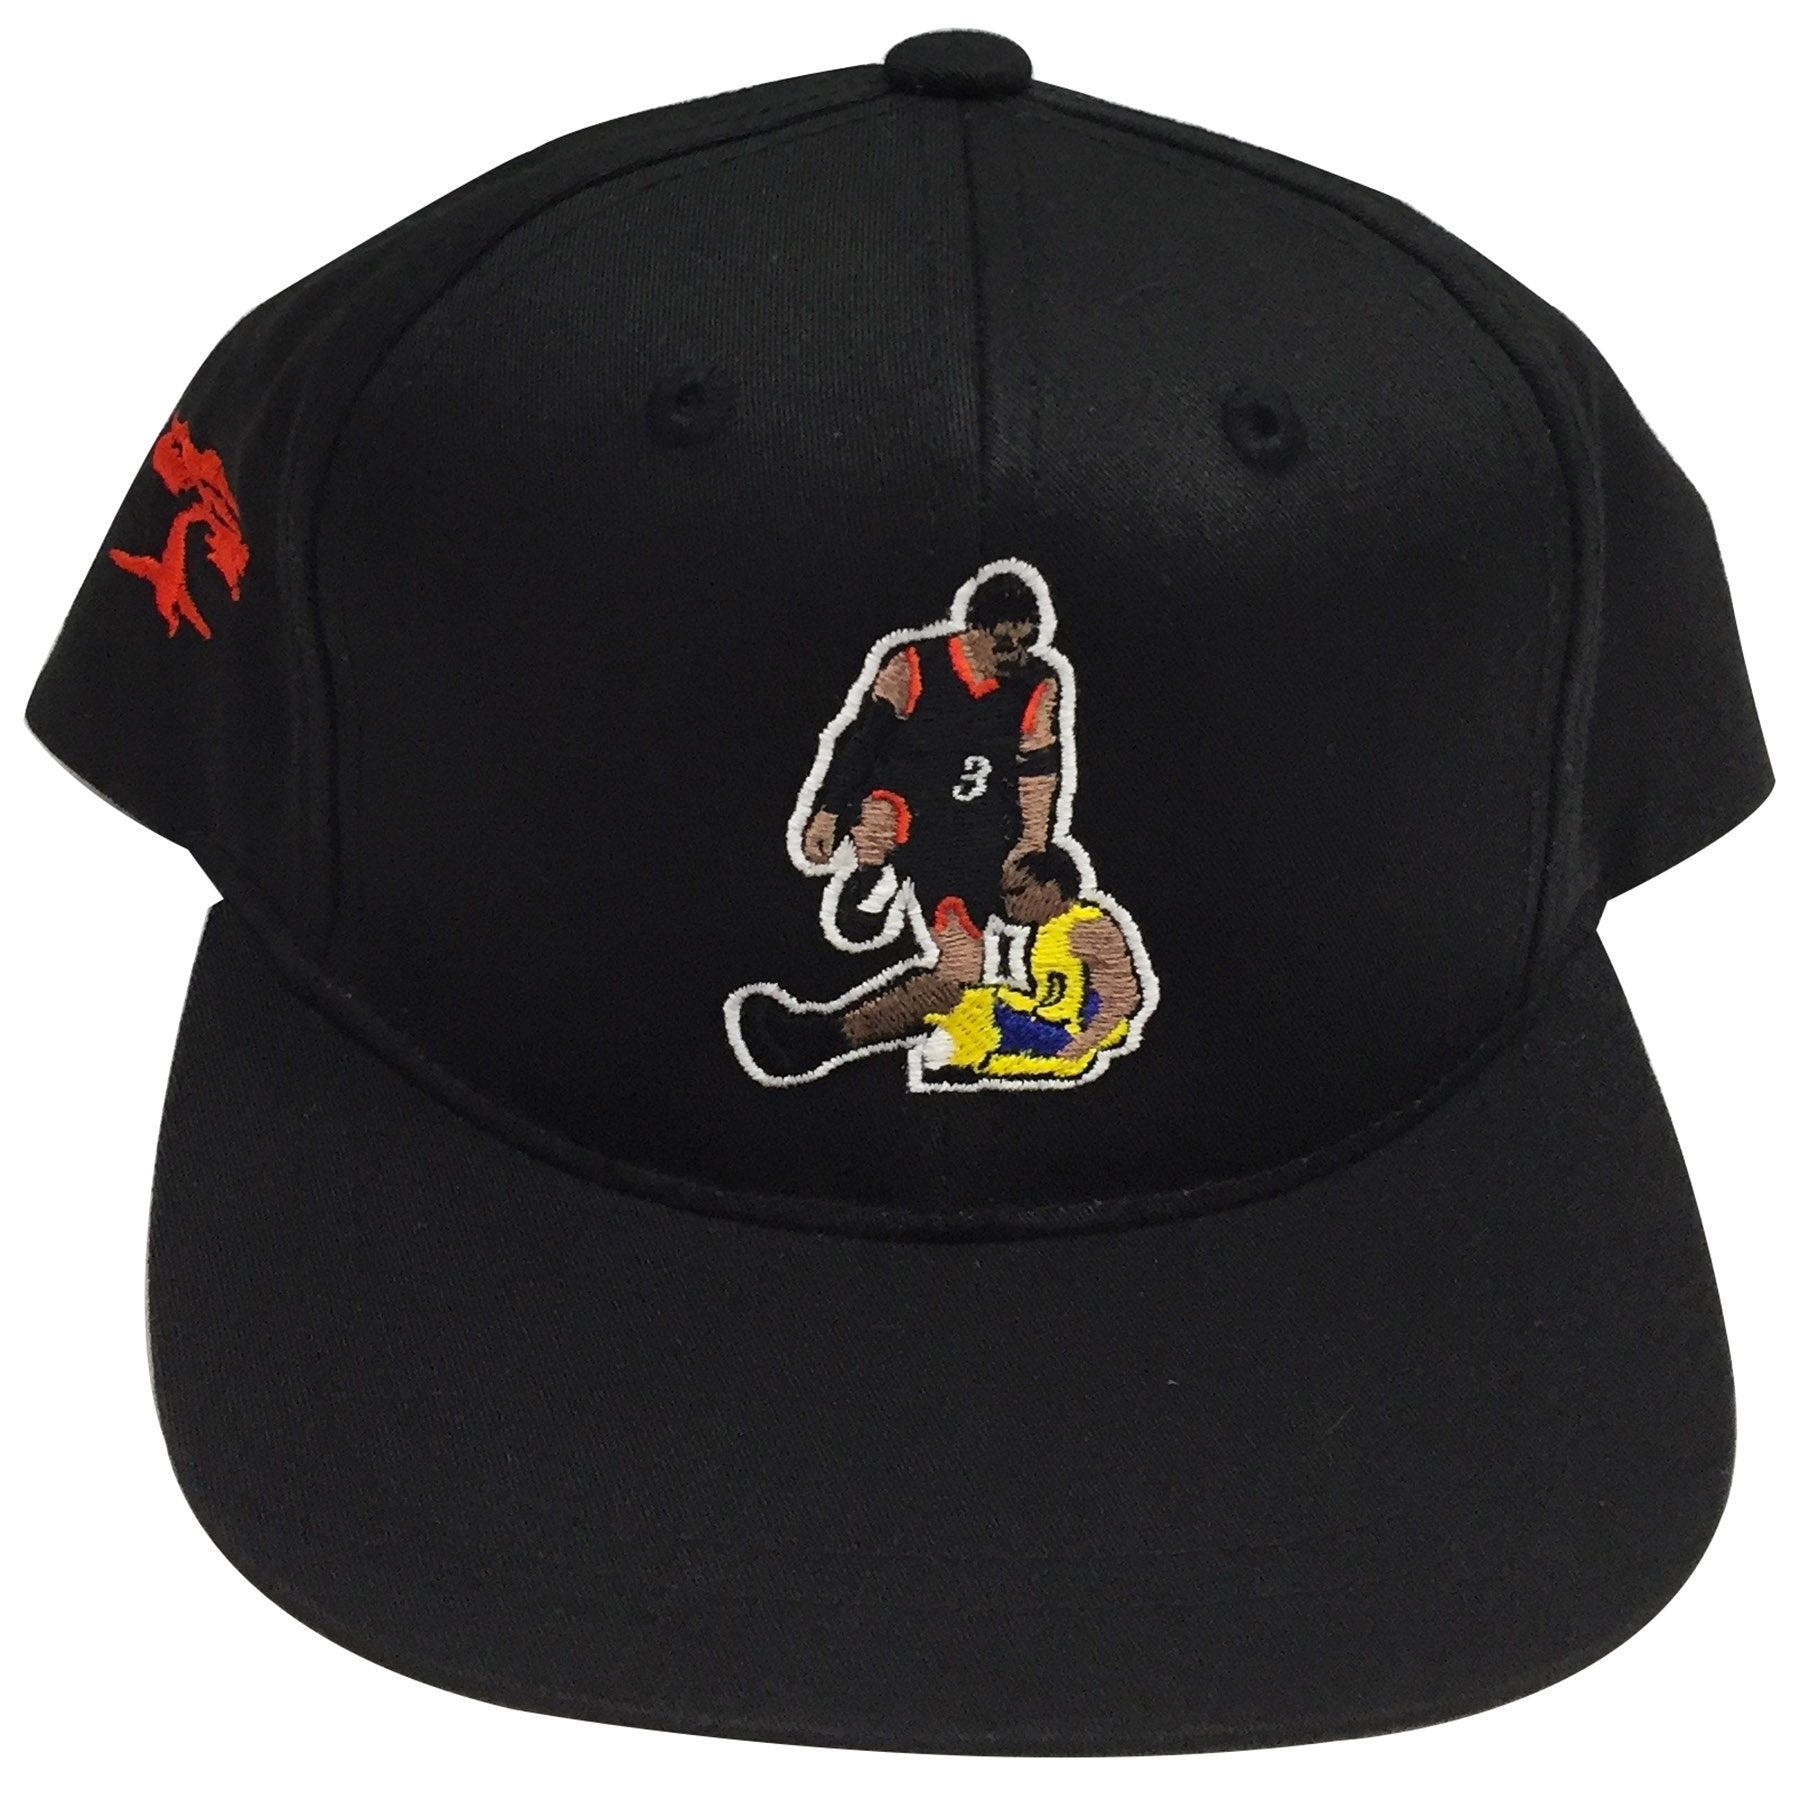 999317dd613 on the front of the allen iverson step over kids black snapback hat is an  embroidered